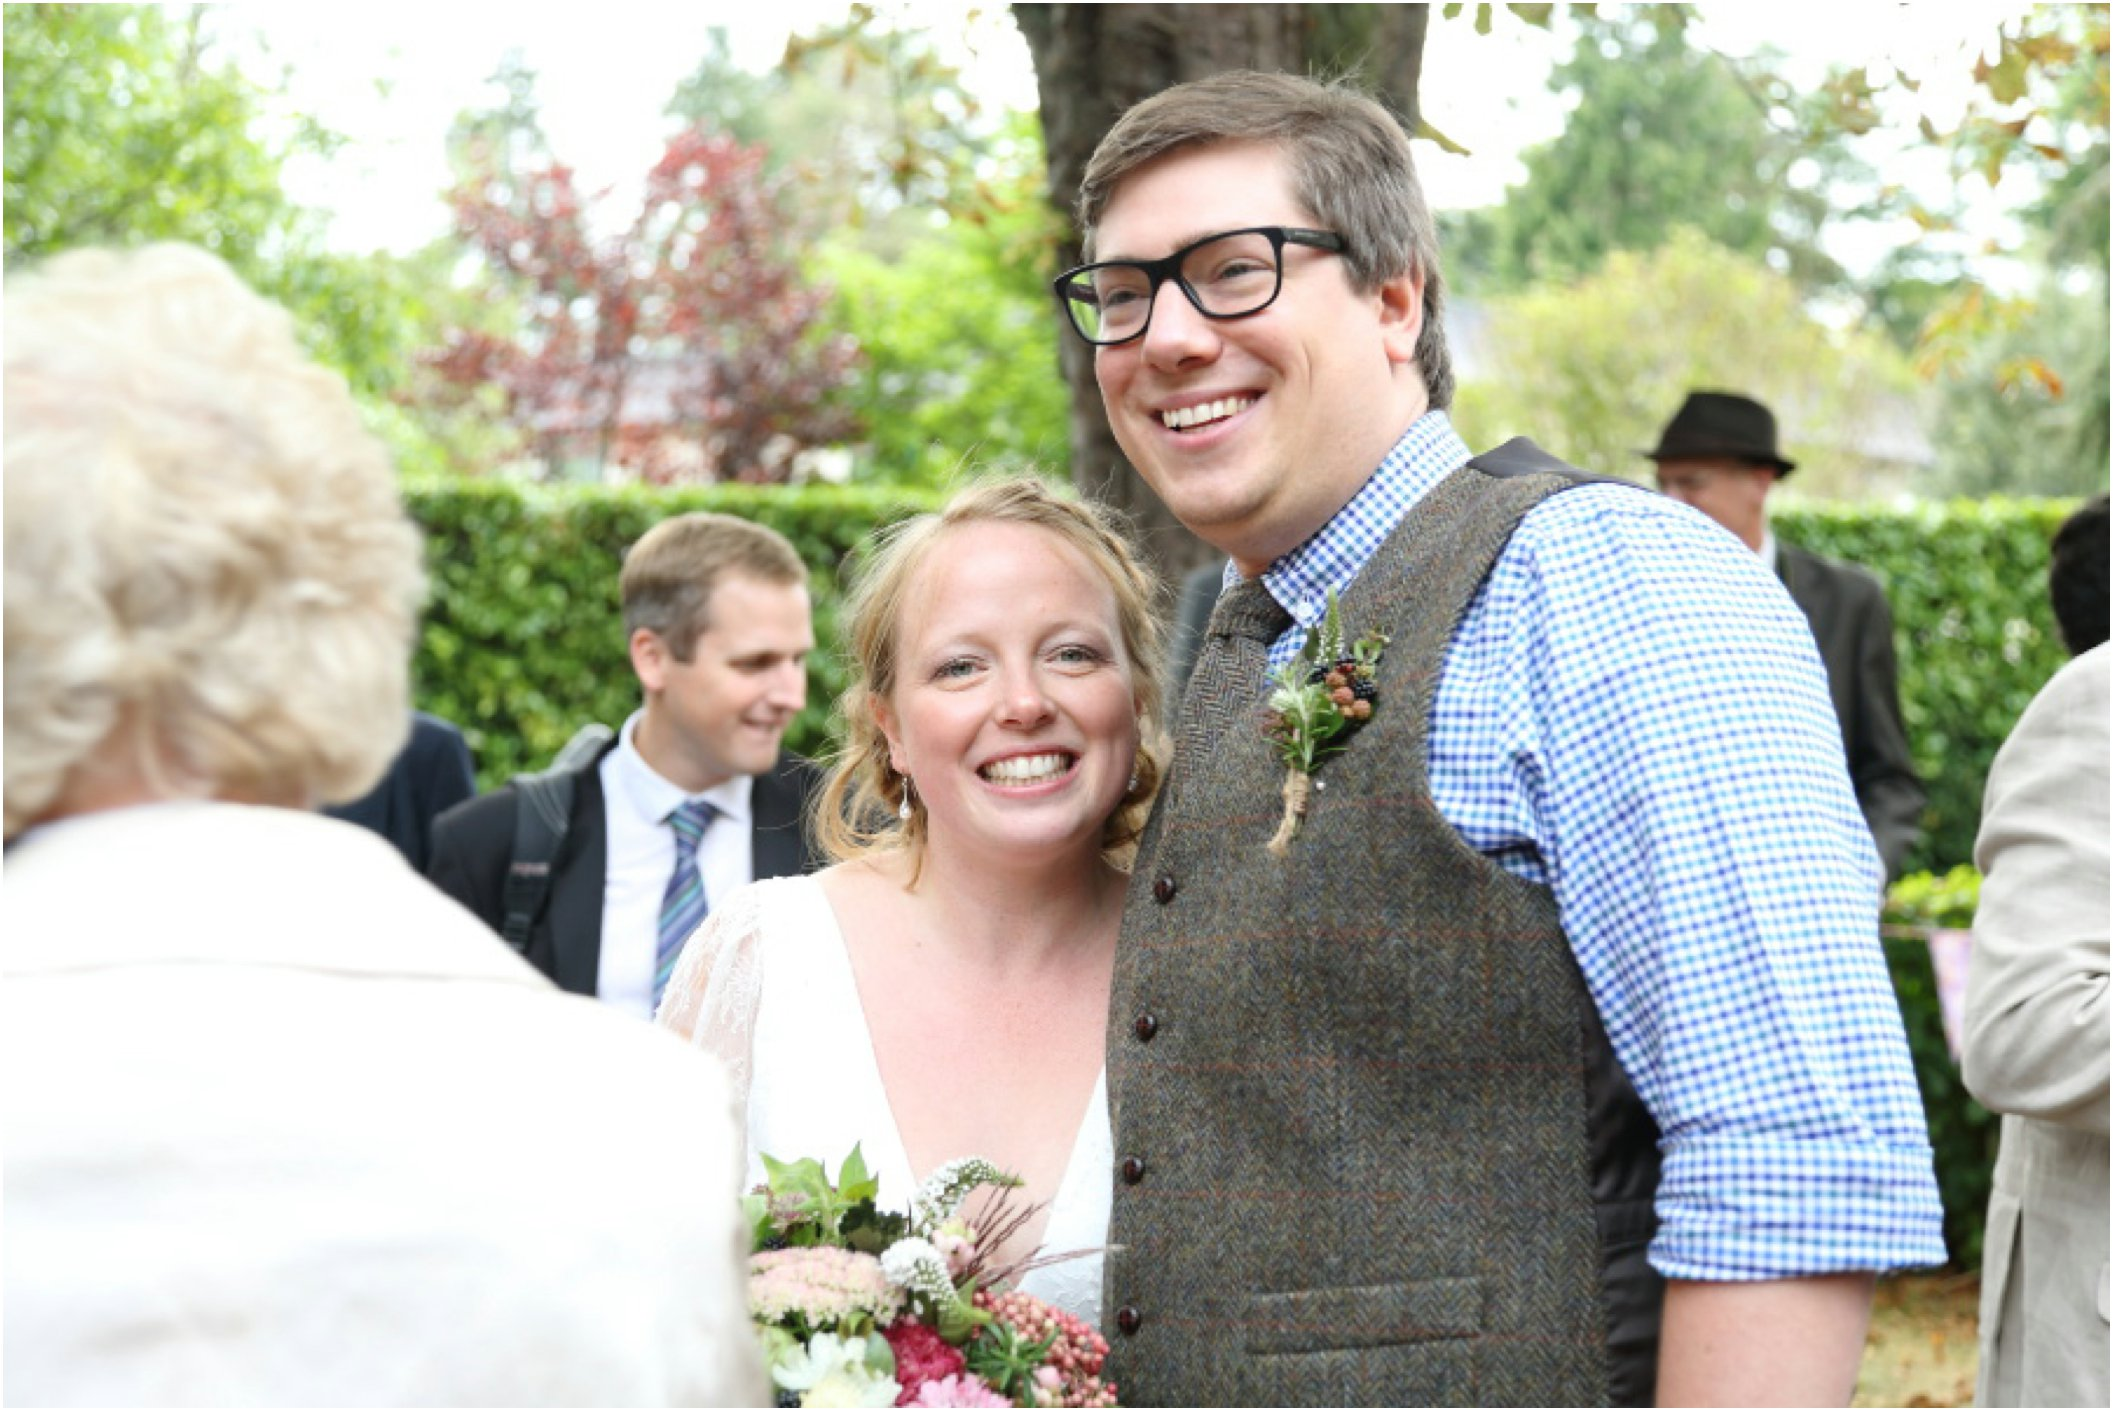 happy couple at informat, rustic wedding Childerley Cambridge